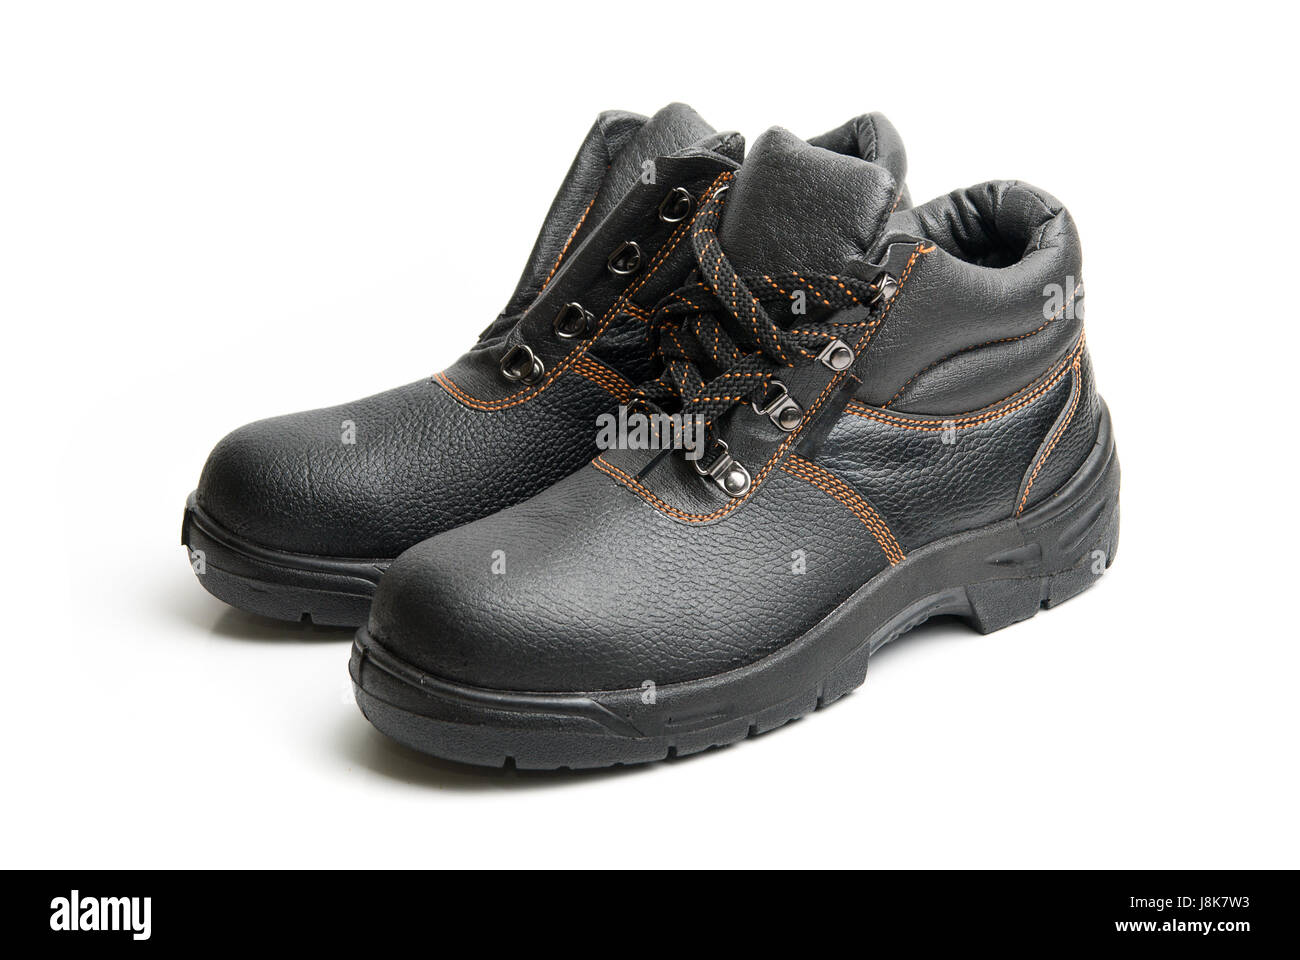 boot, walk, go, going, walking, men, man, object, travel, isolated, holiday, - Stock Image